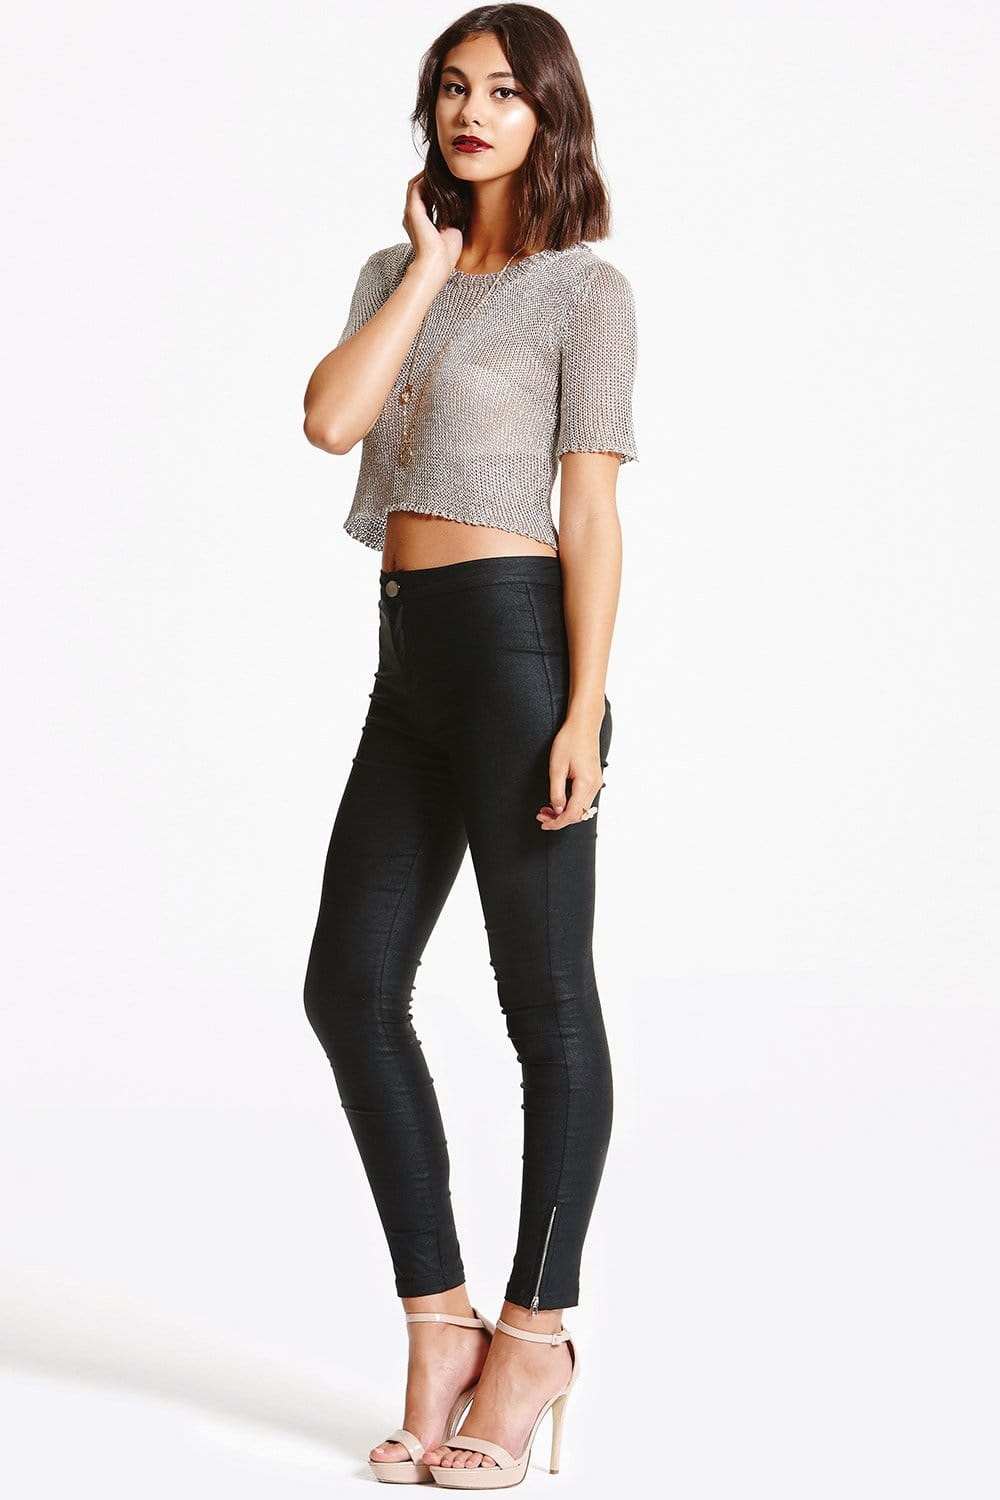 Outlet Girls On Film Black Leather Look Jeans Outlet